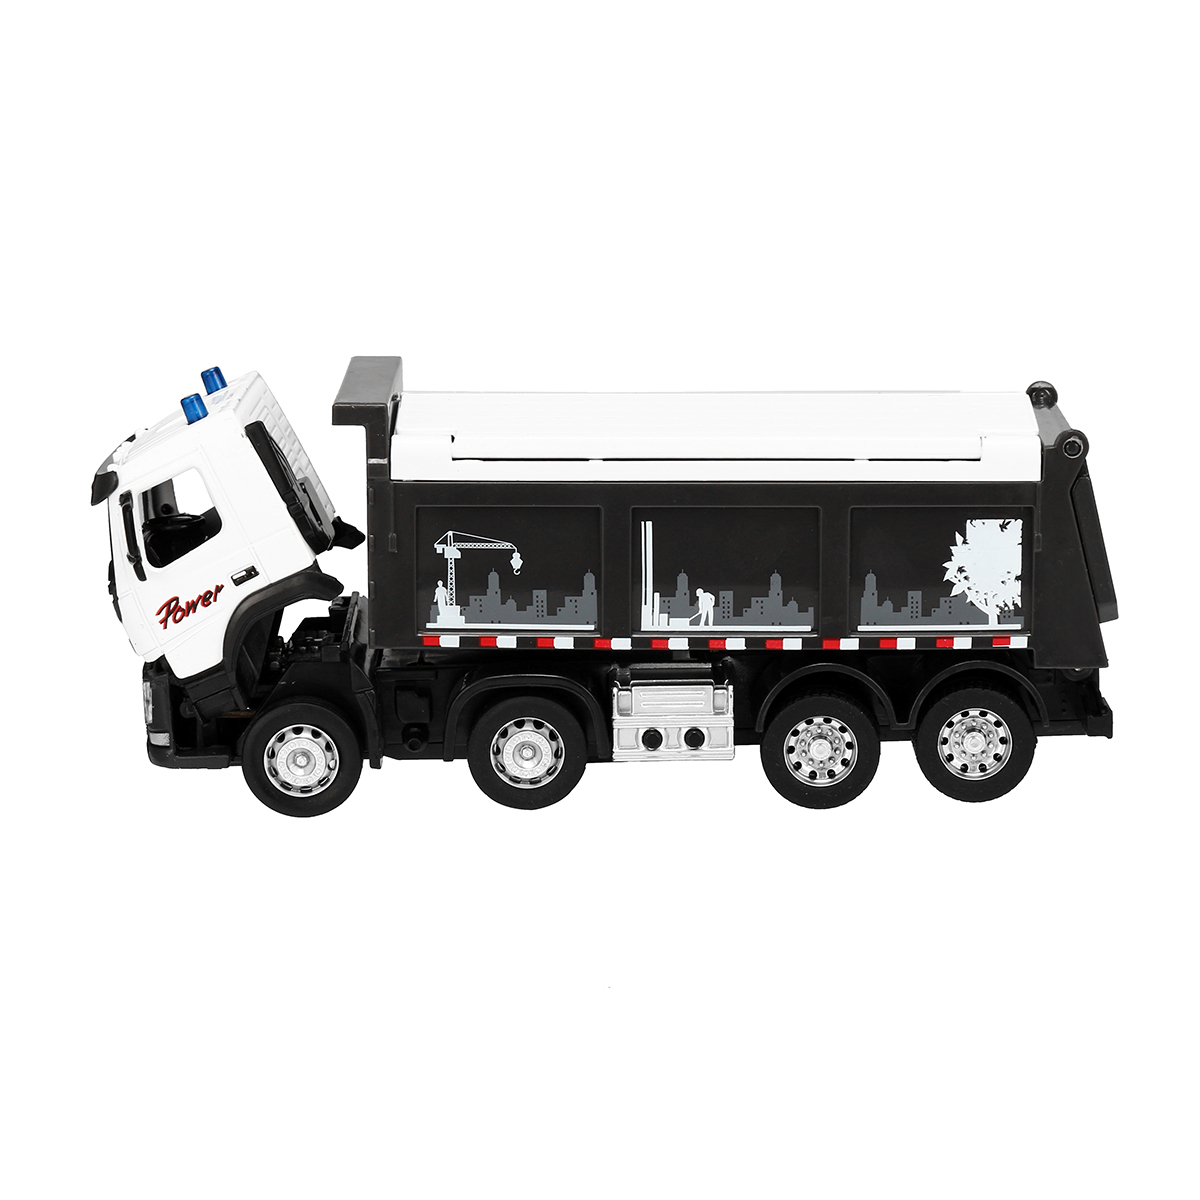 Engineering Car Sound & Light 1:50 Scale Diecast Model Dump Truck Toy